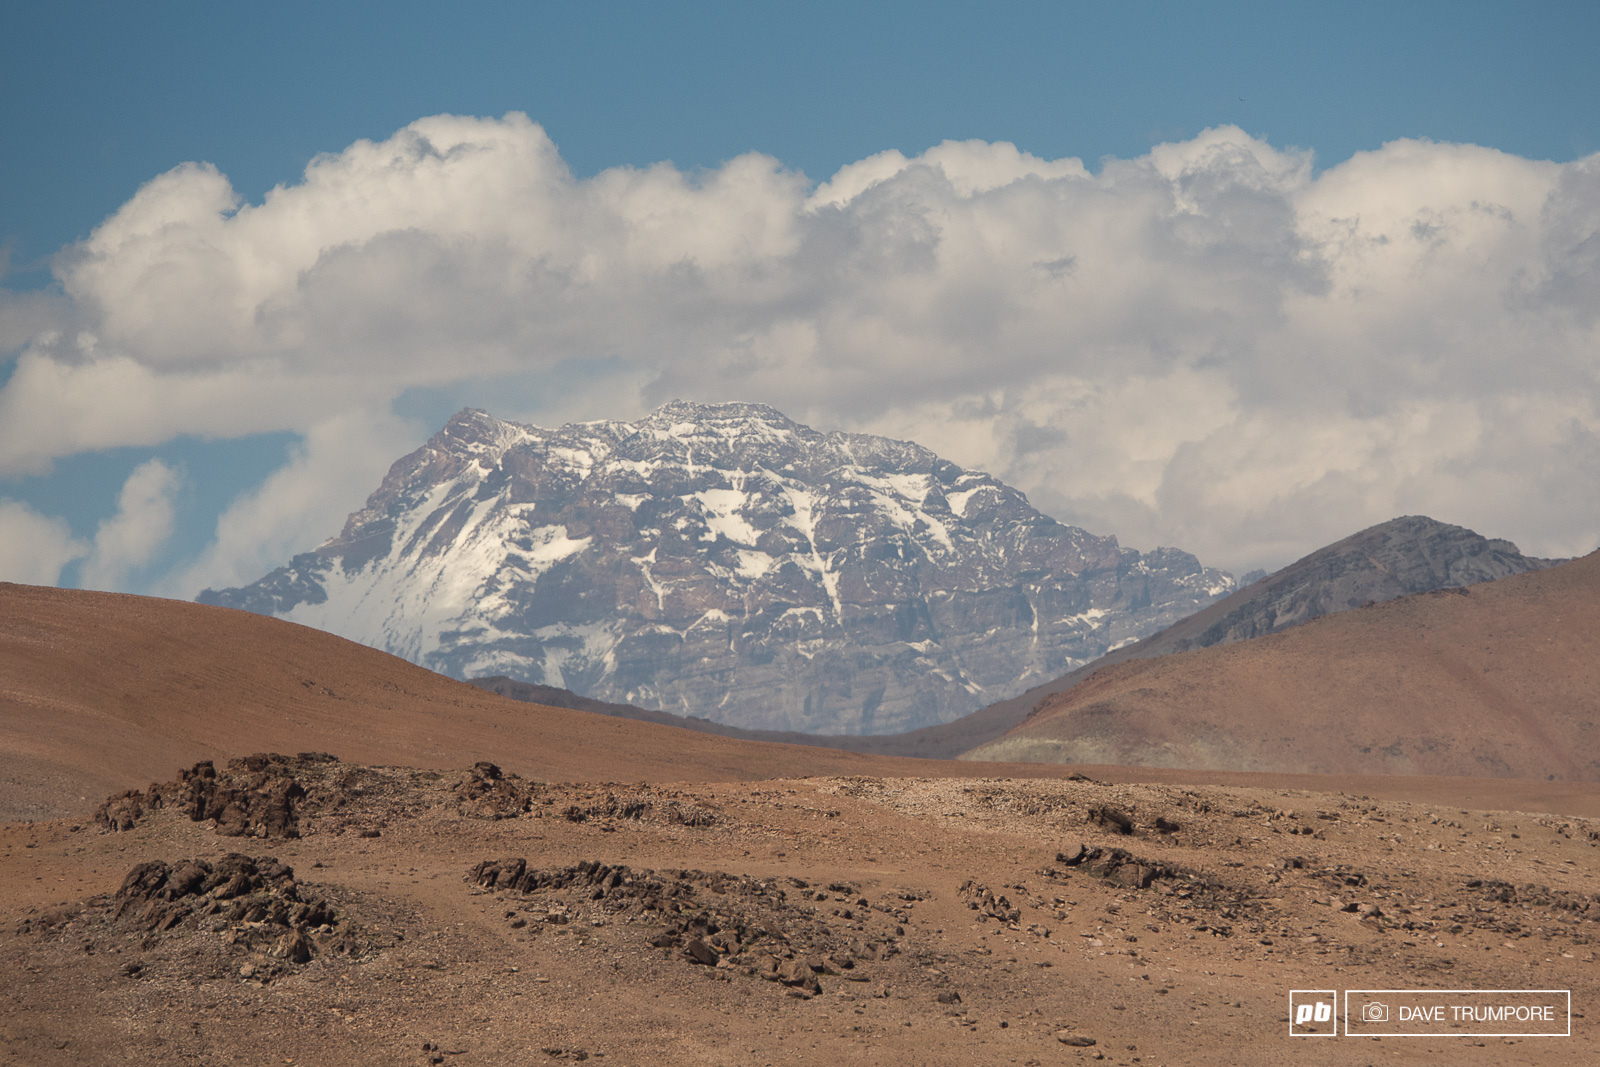 The 6960 meter summit of Aconcagua as seen from the start of Day 3.